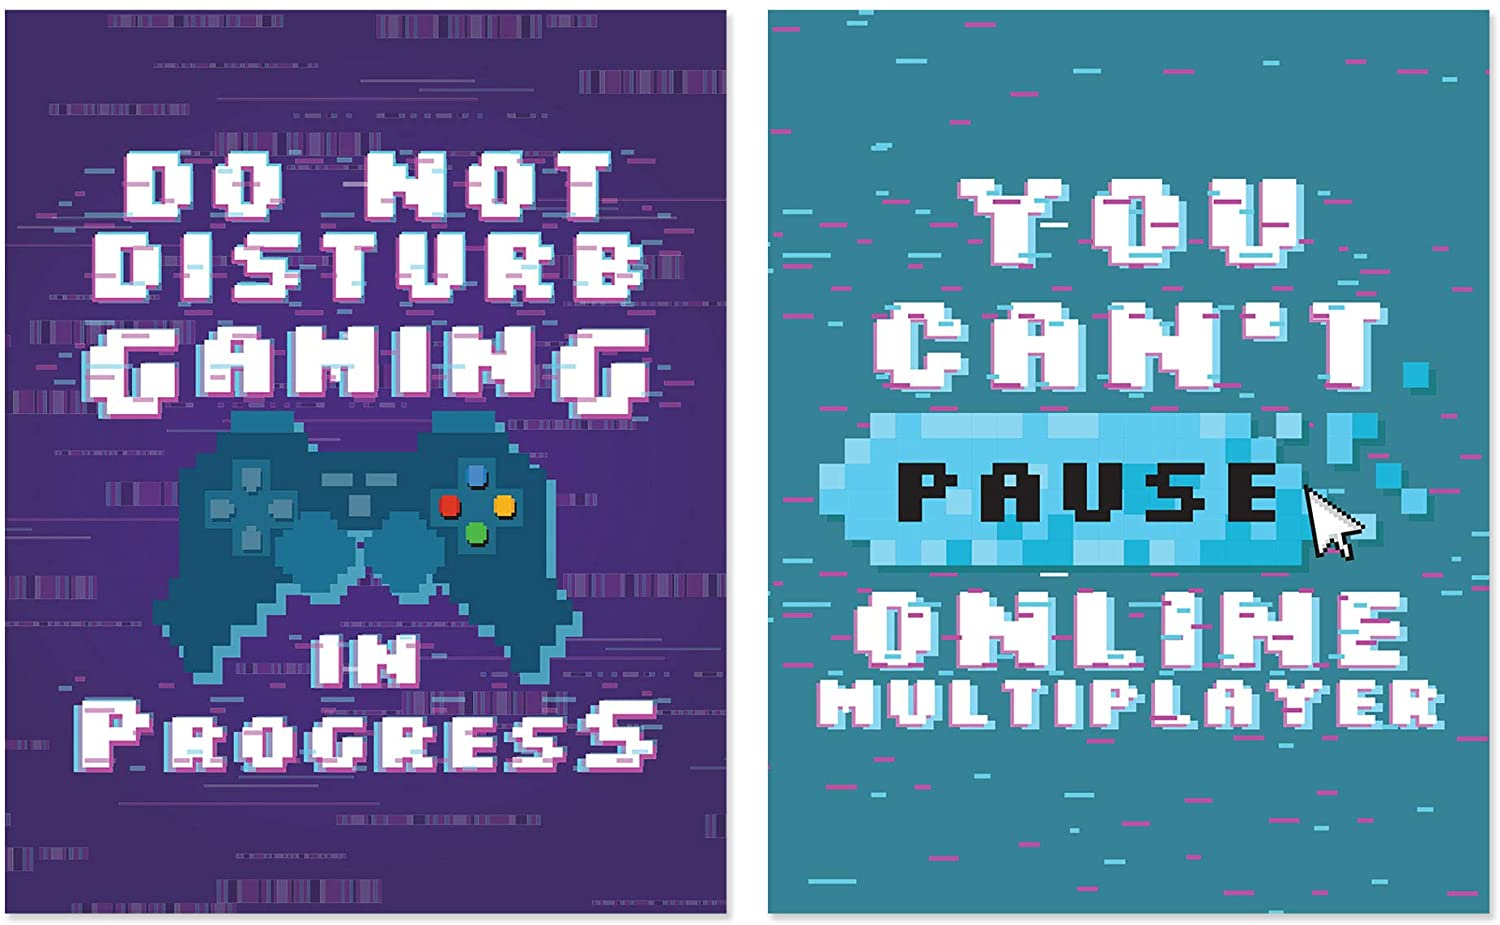 Pixel Video Game Posters - Funny Gaming Quotes Wall Art-Set of 2 Unframed (8x10 inches) Gamer Themed Decor - Gaming Posters for Boys Bedroom Decorations, Gifts, and Birthday Party Decor - Set 6